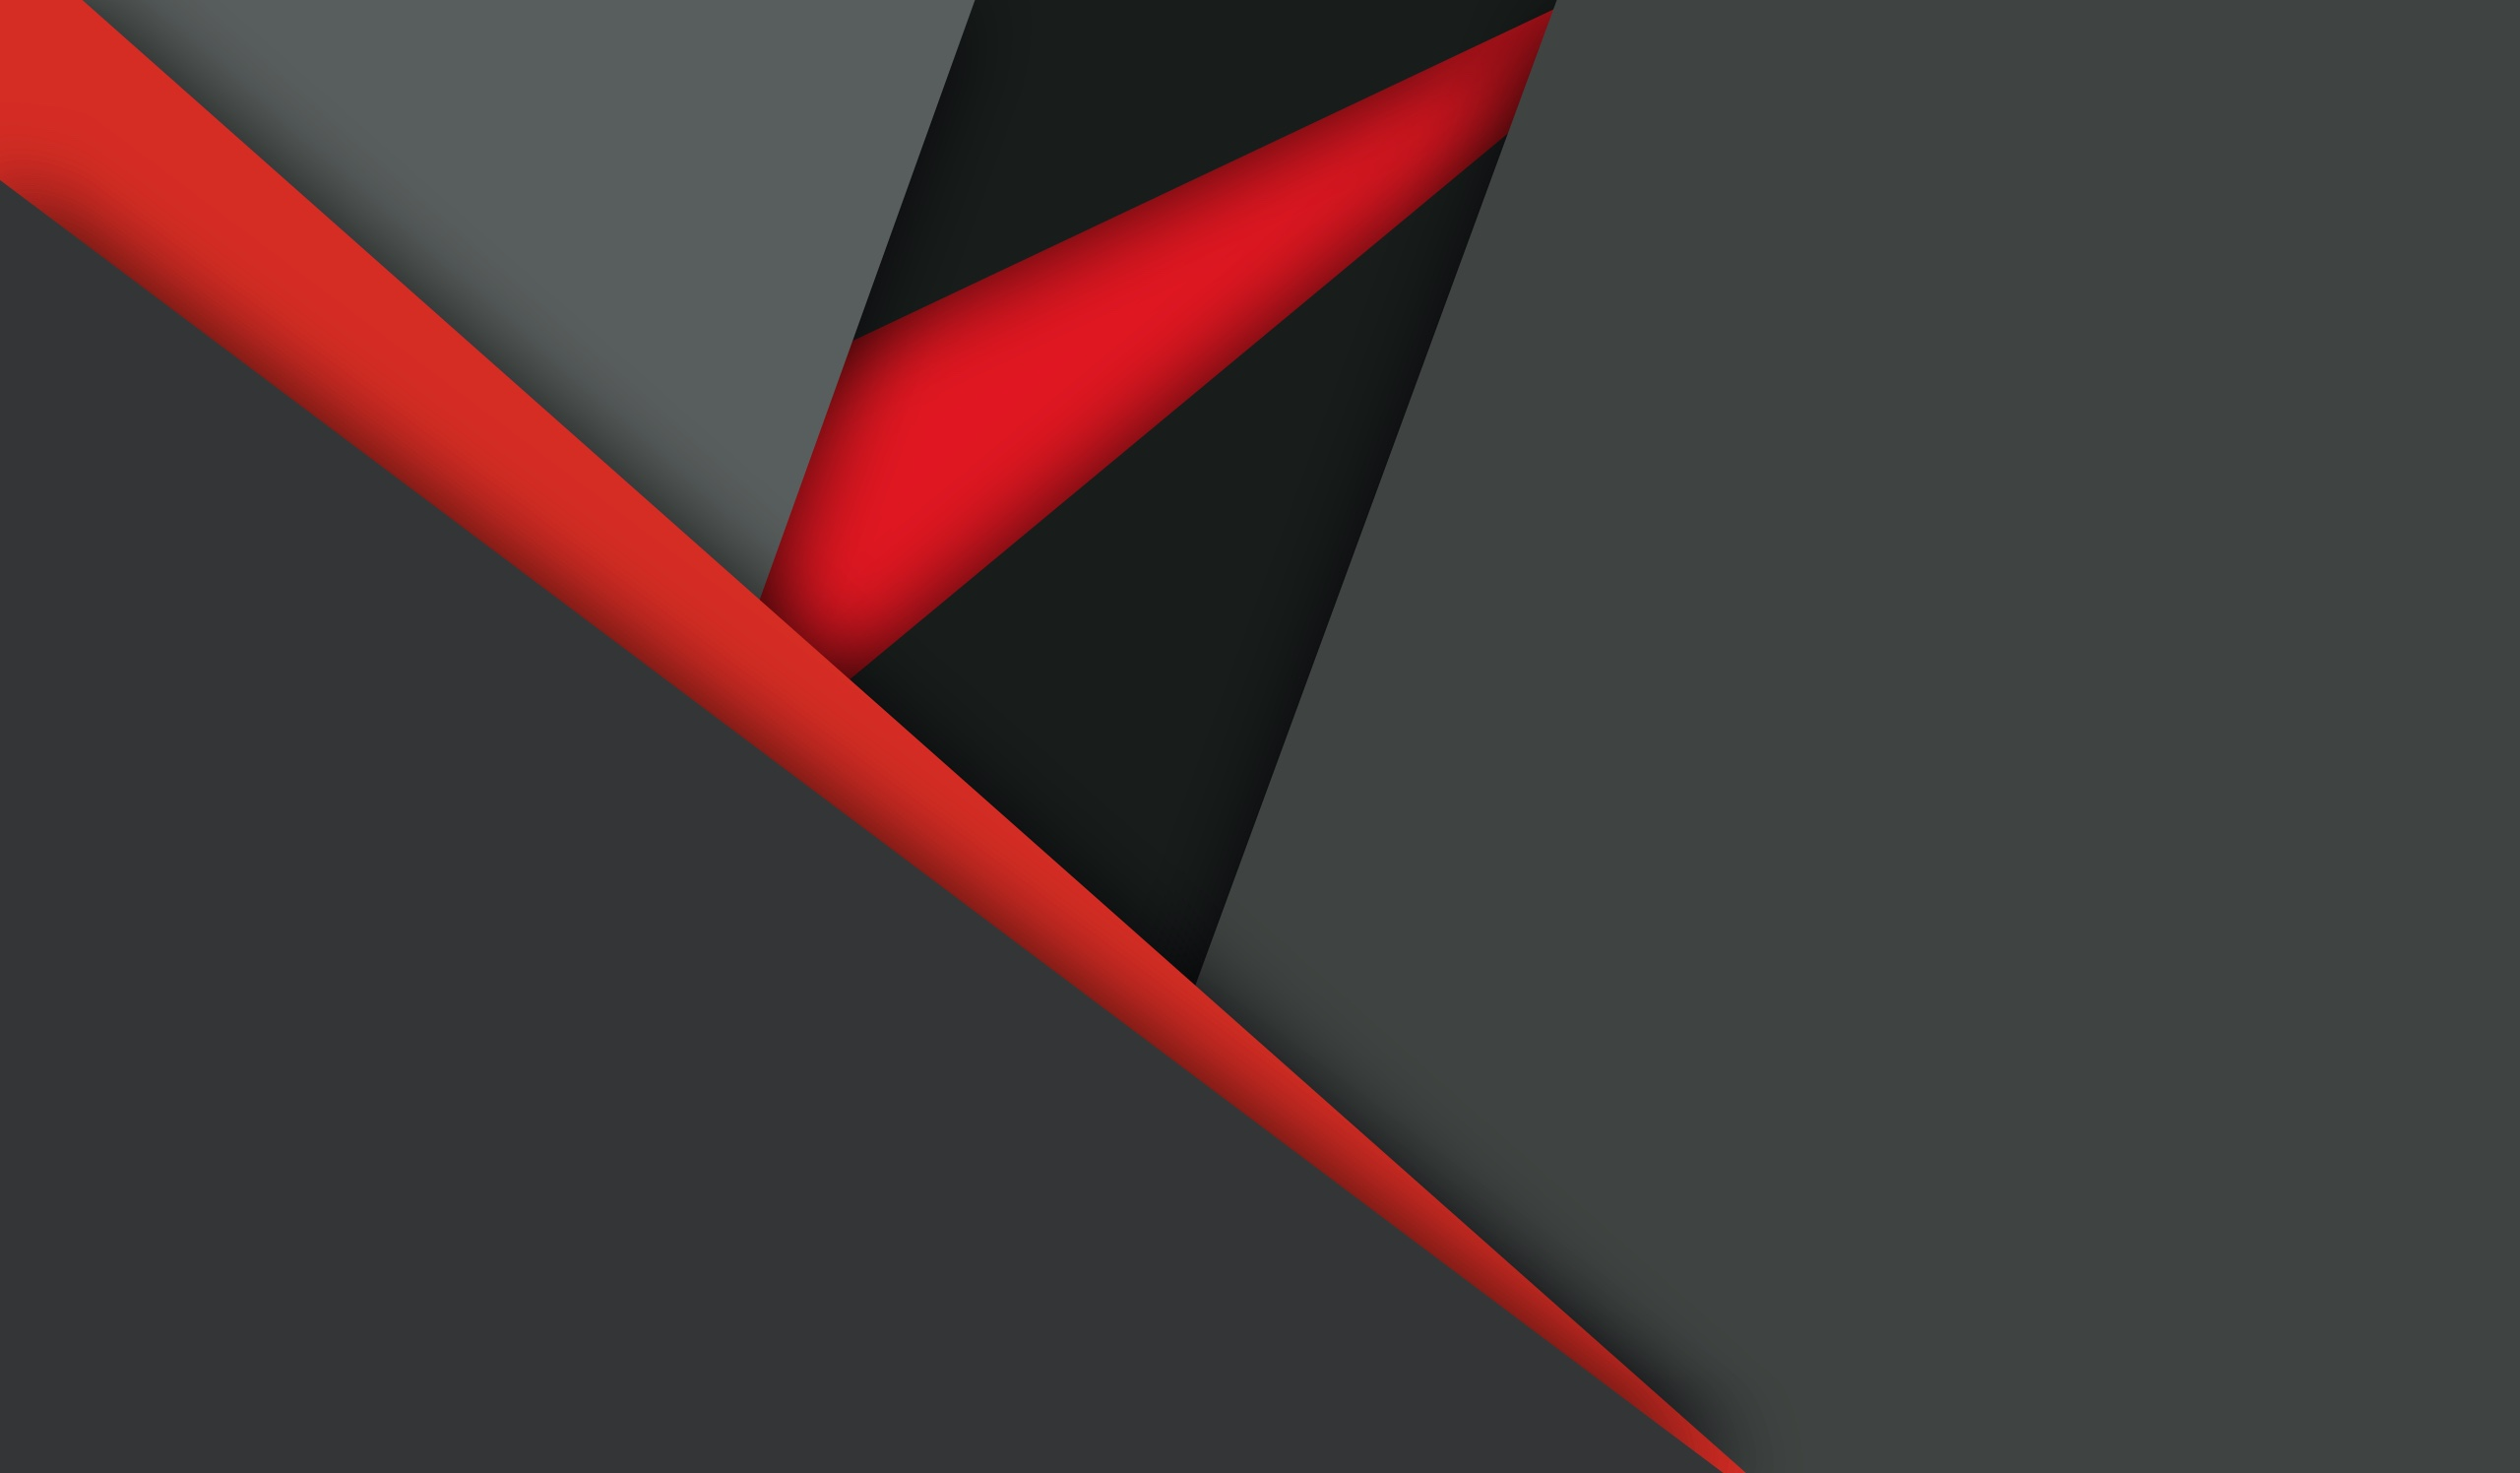 Material Design Dark Red Black